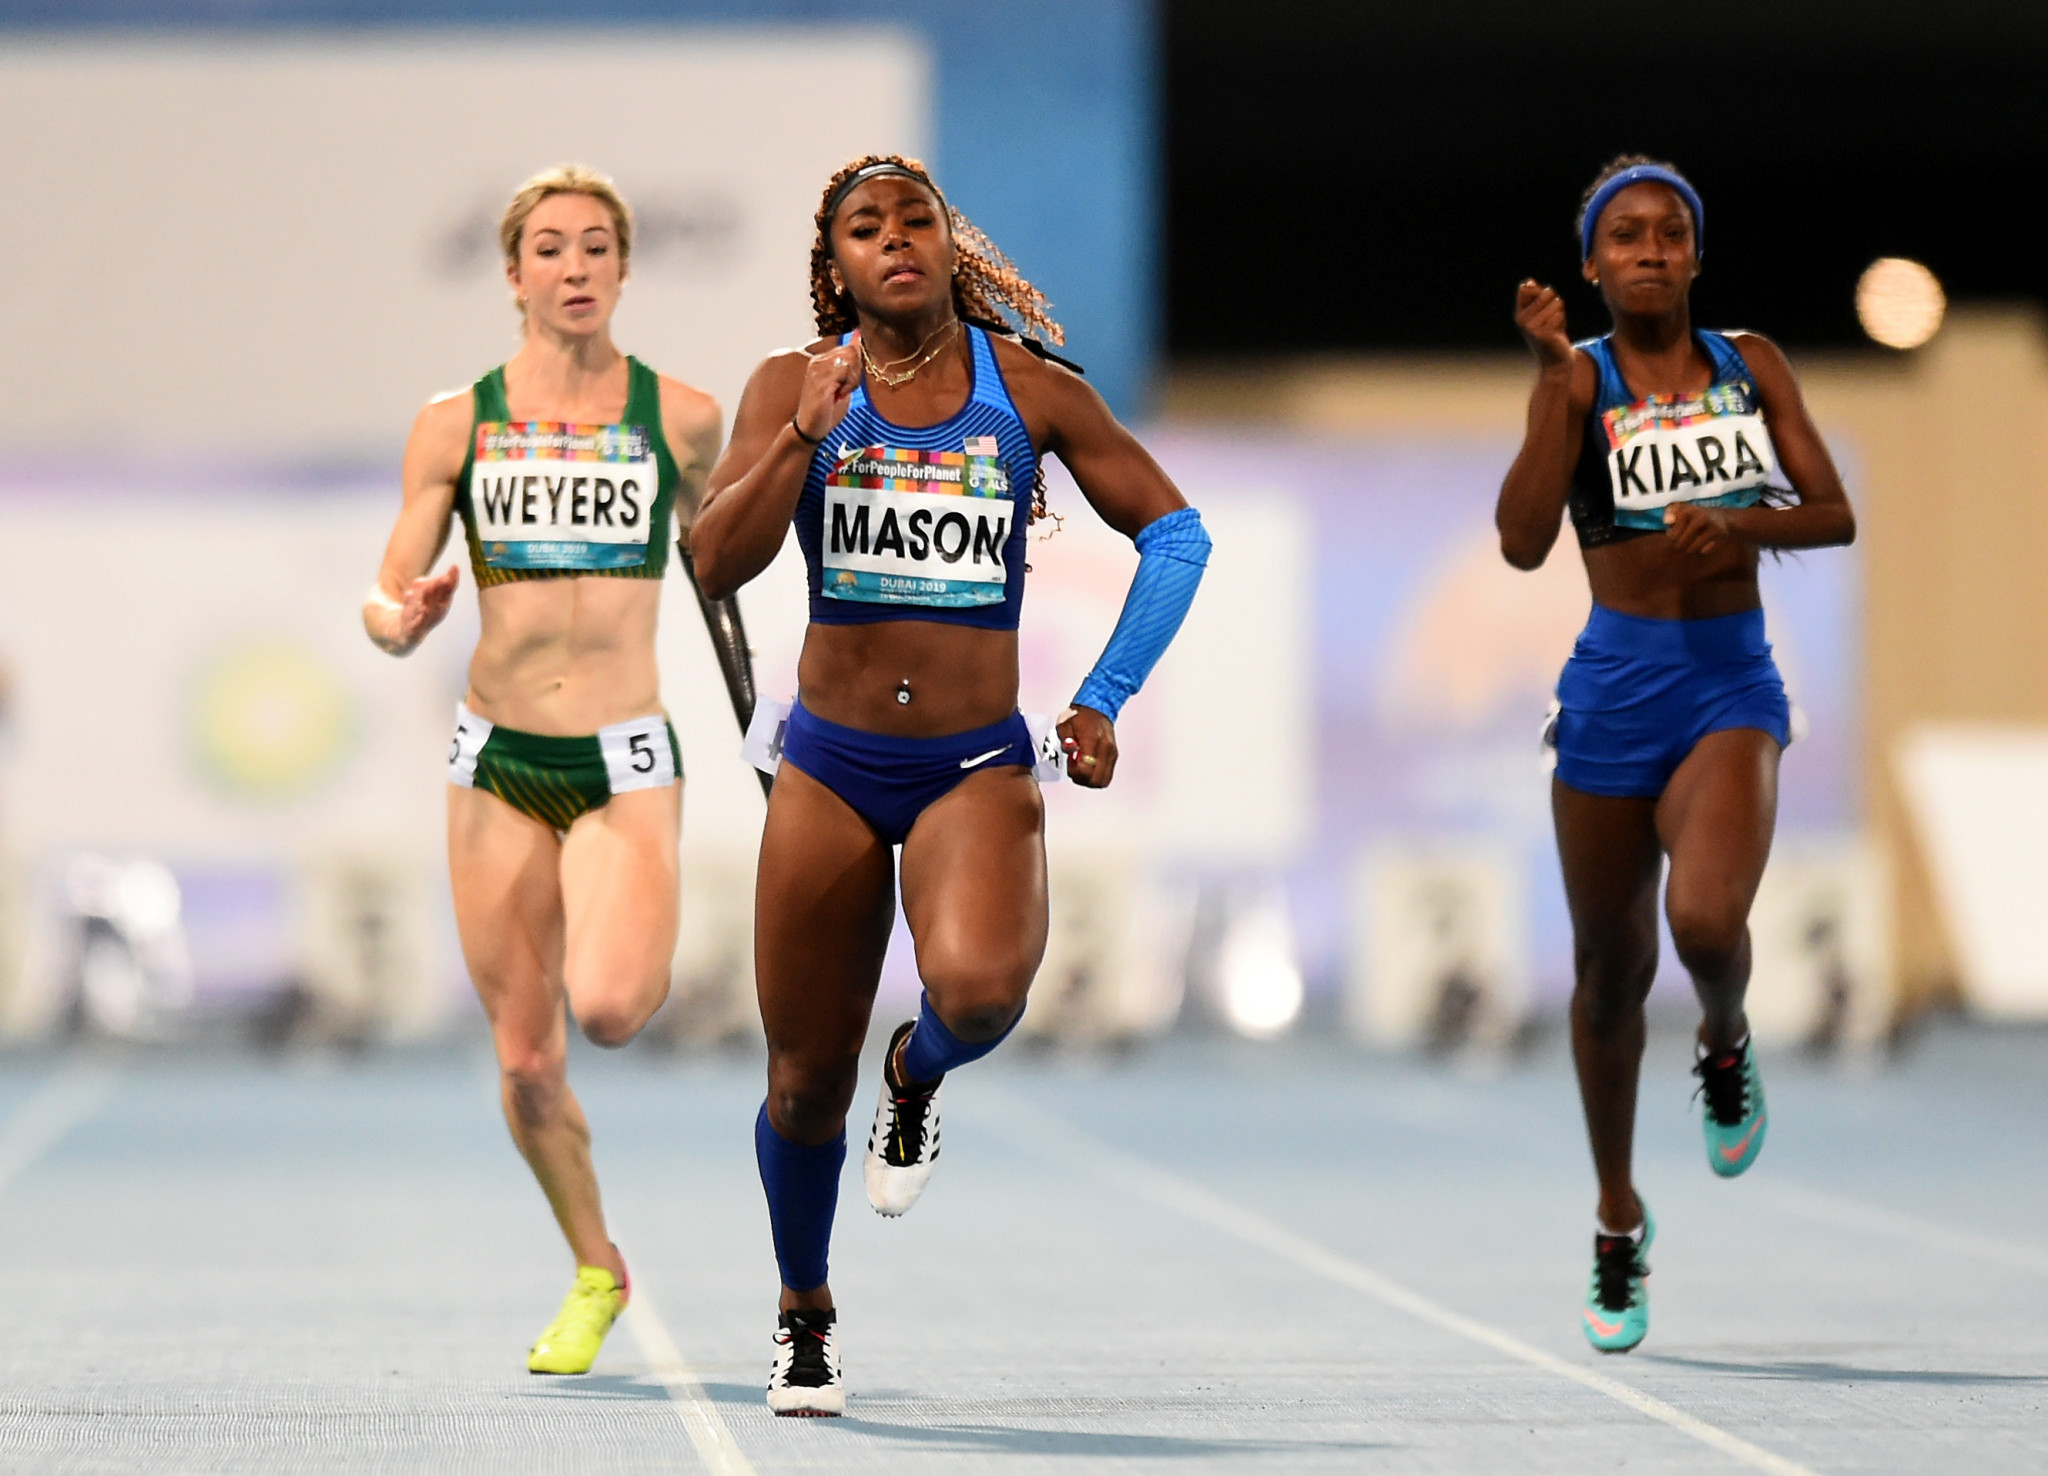 The last edition of the World Para Athletics Championships took place in 2019 in Dubai ©Getty Images